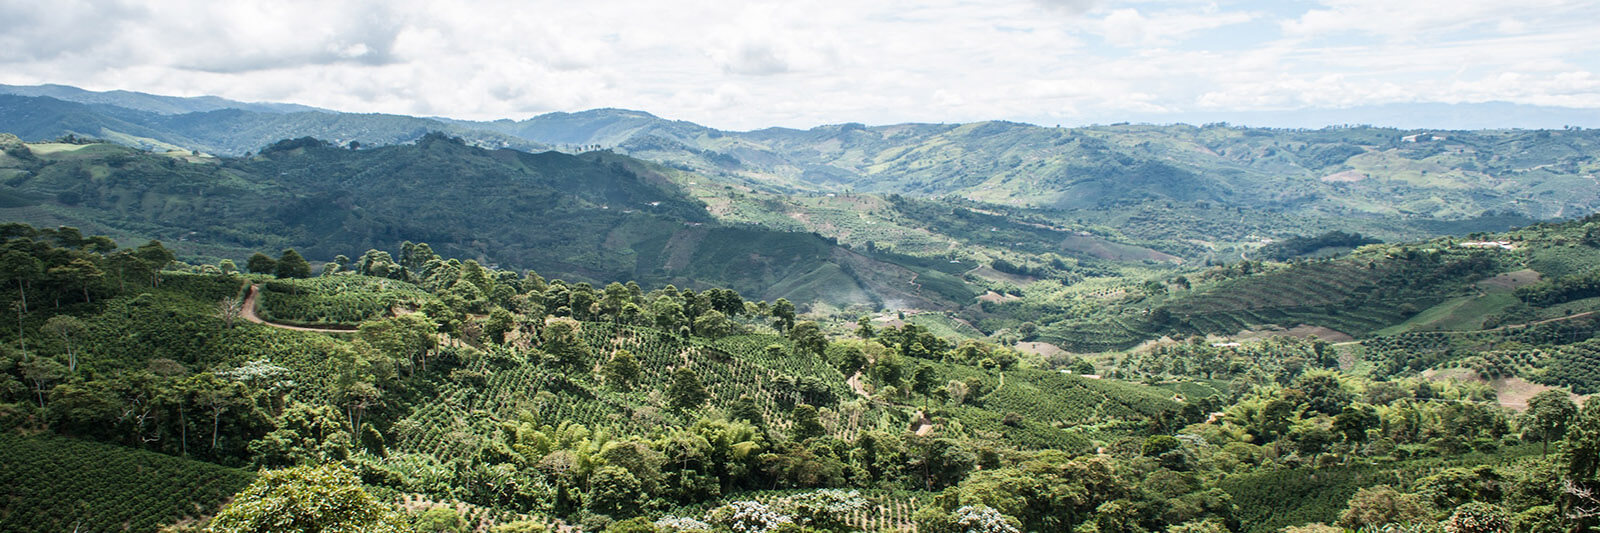 Rolling hills and mountains of Colombia